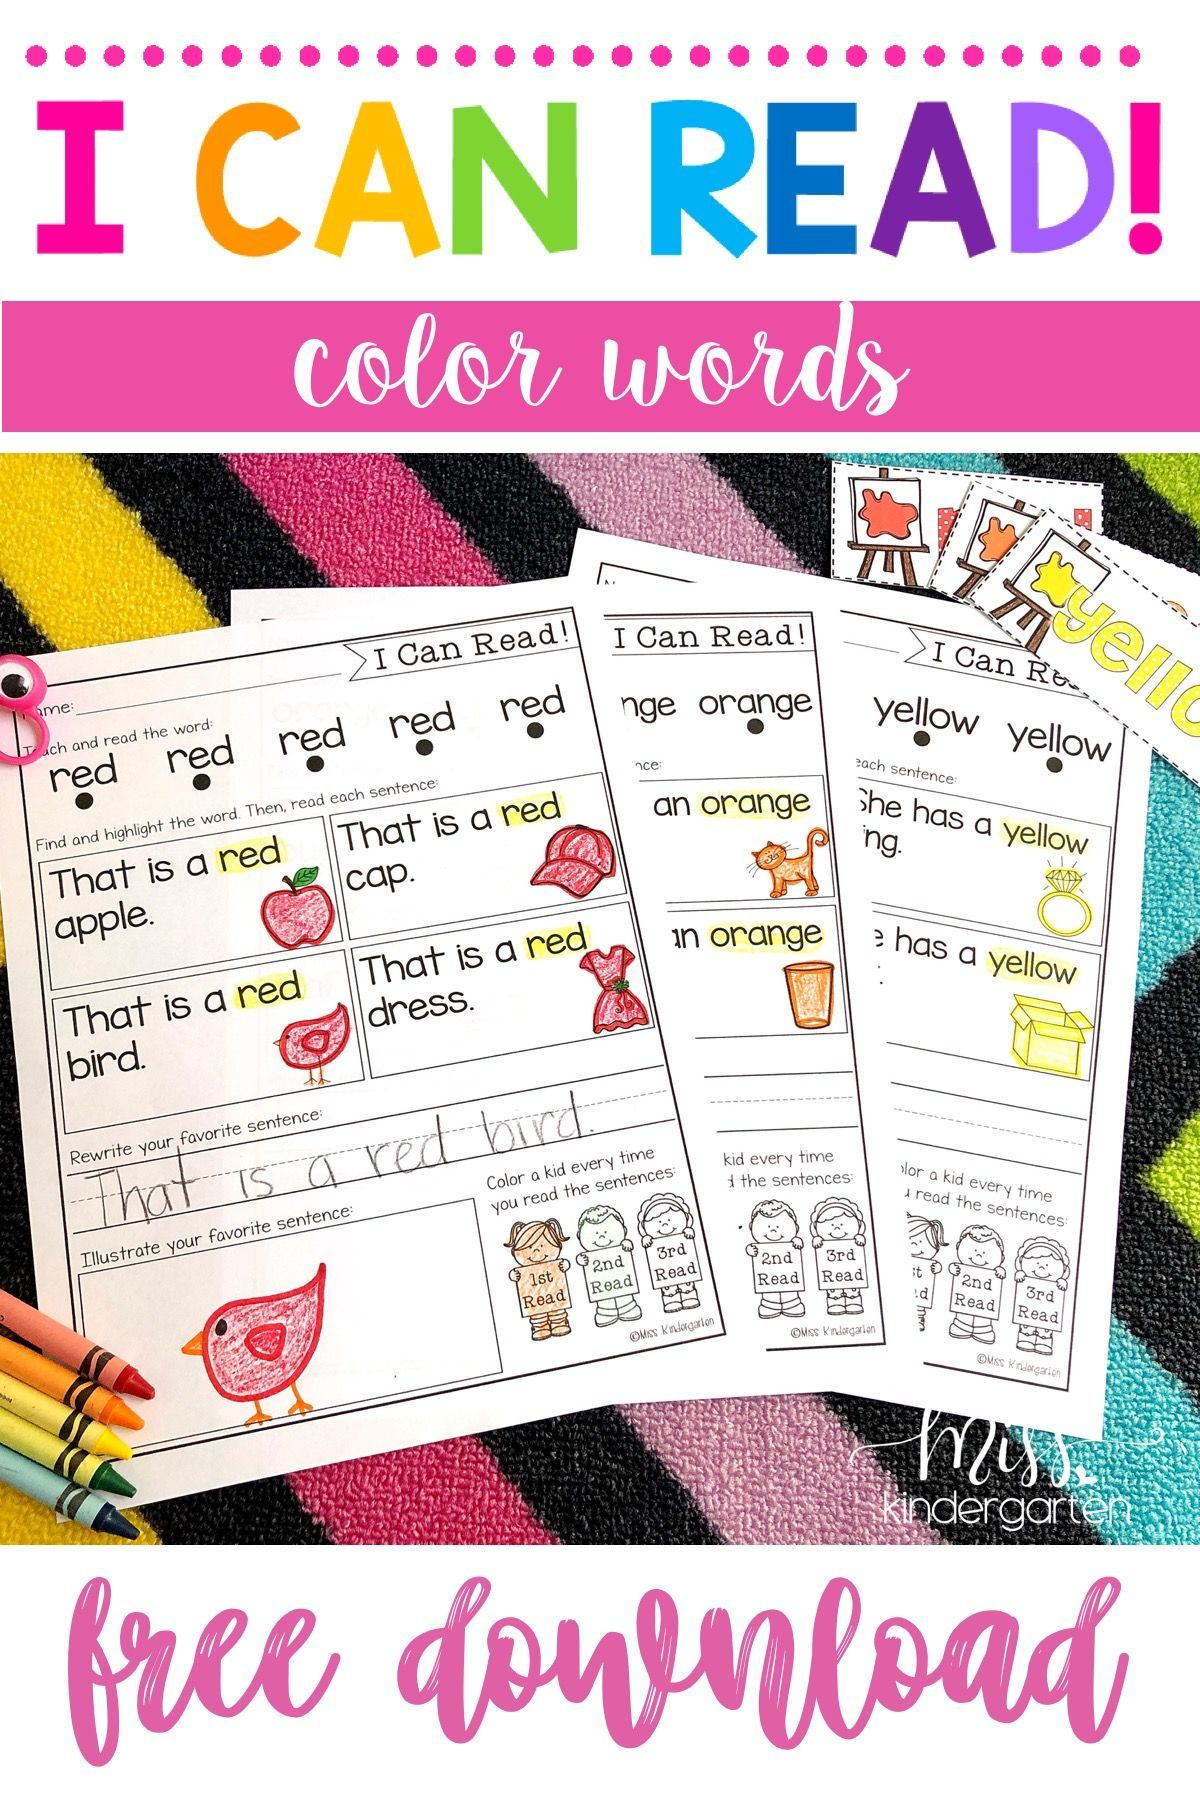 Teaching Sight Words Doesn T Have To Be Hard Help Your Students Practice Their Sights Words